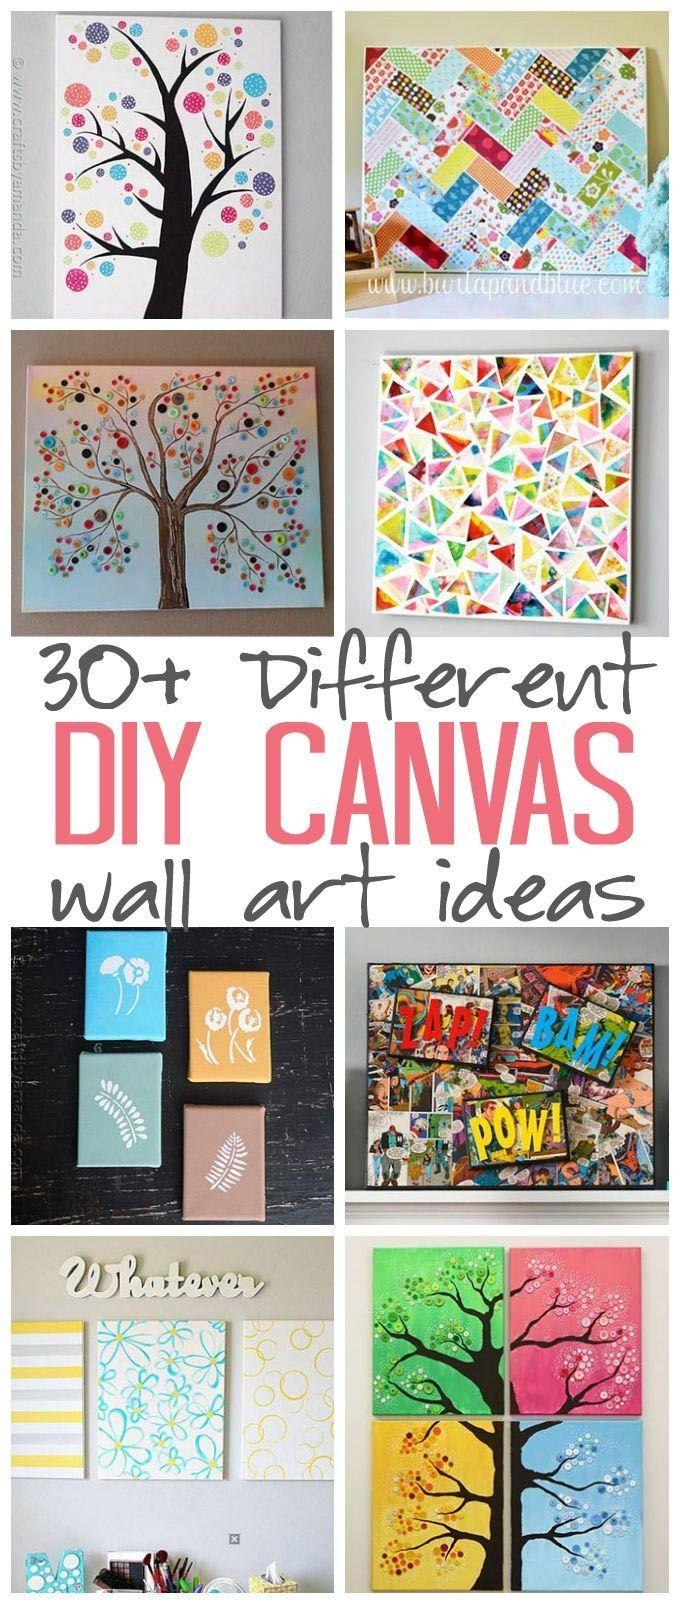 Best 20+ Canvas Wall Art Ideas On Pinterest—No Signup Required Pertaining To Small Canvas Wall Art (View 4 of 20)